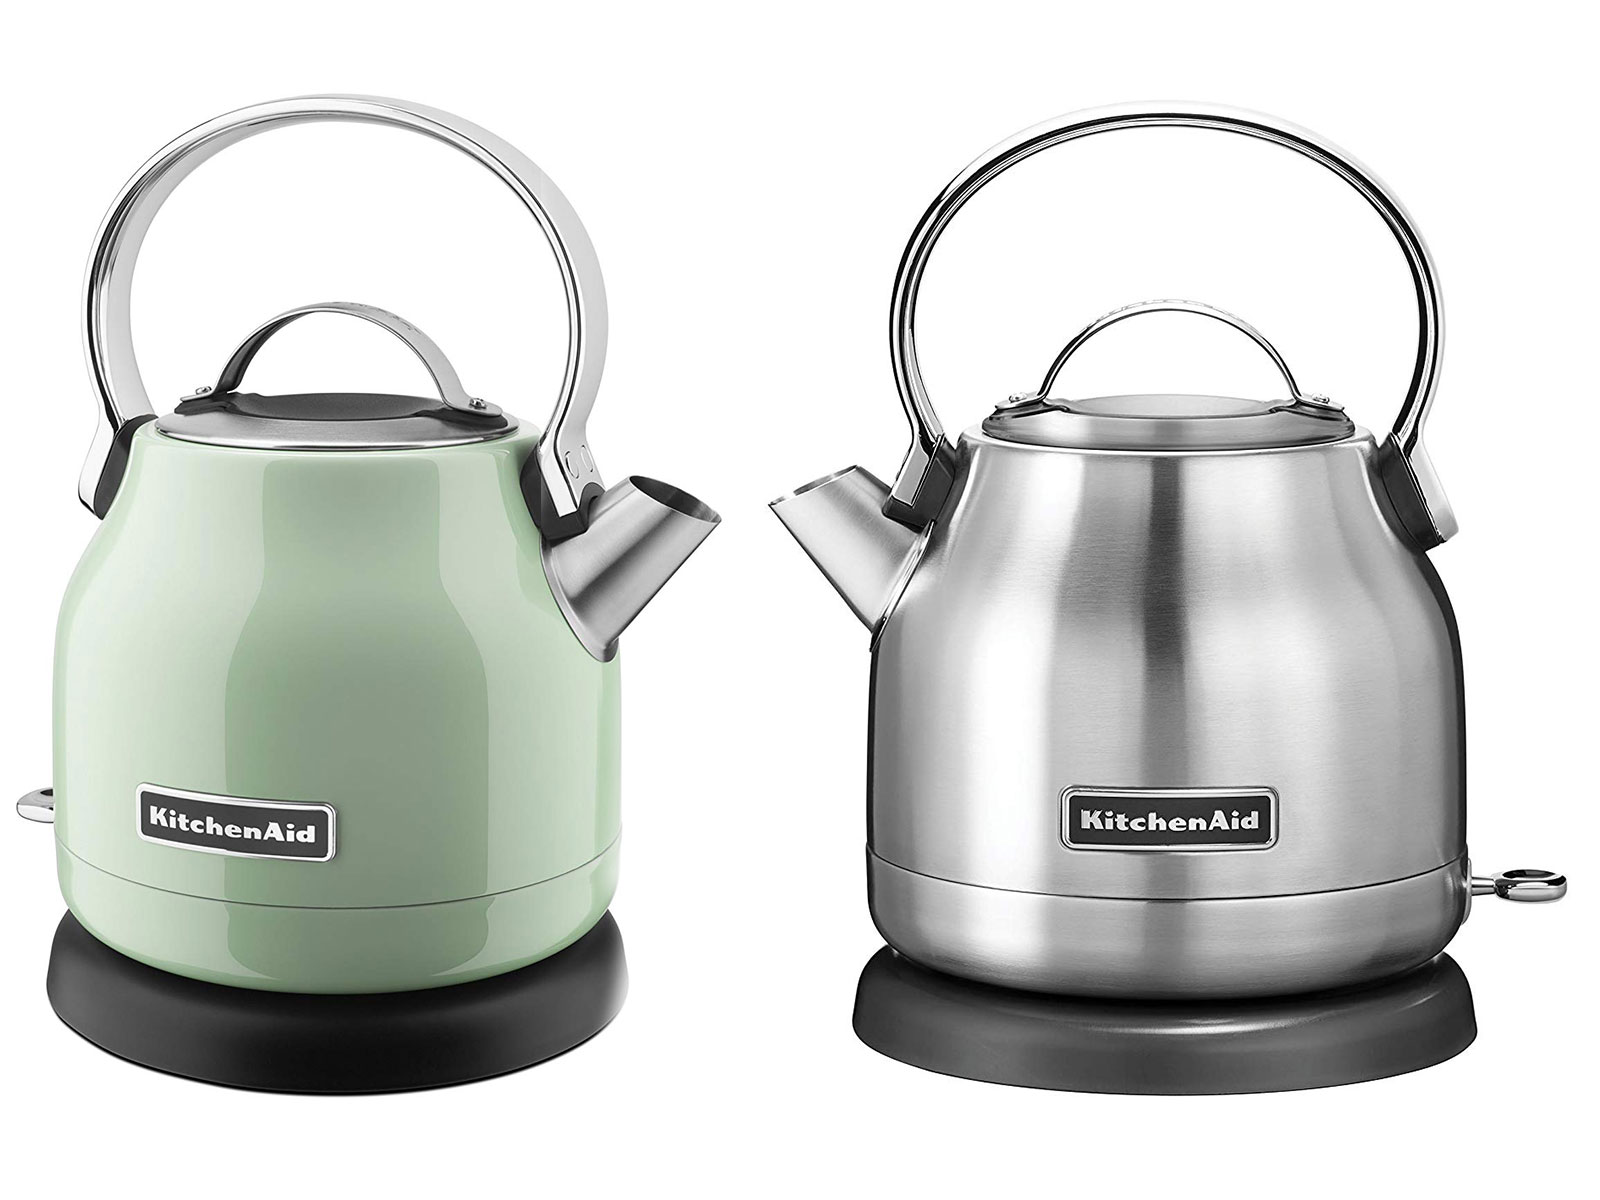 Hurry Kitchenaid Tools Are Up To 50 Off For Cyber Monday